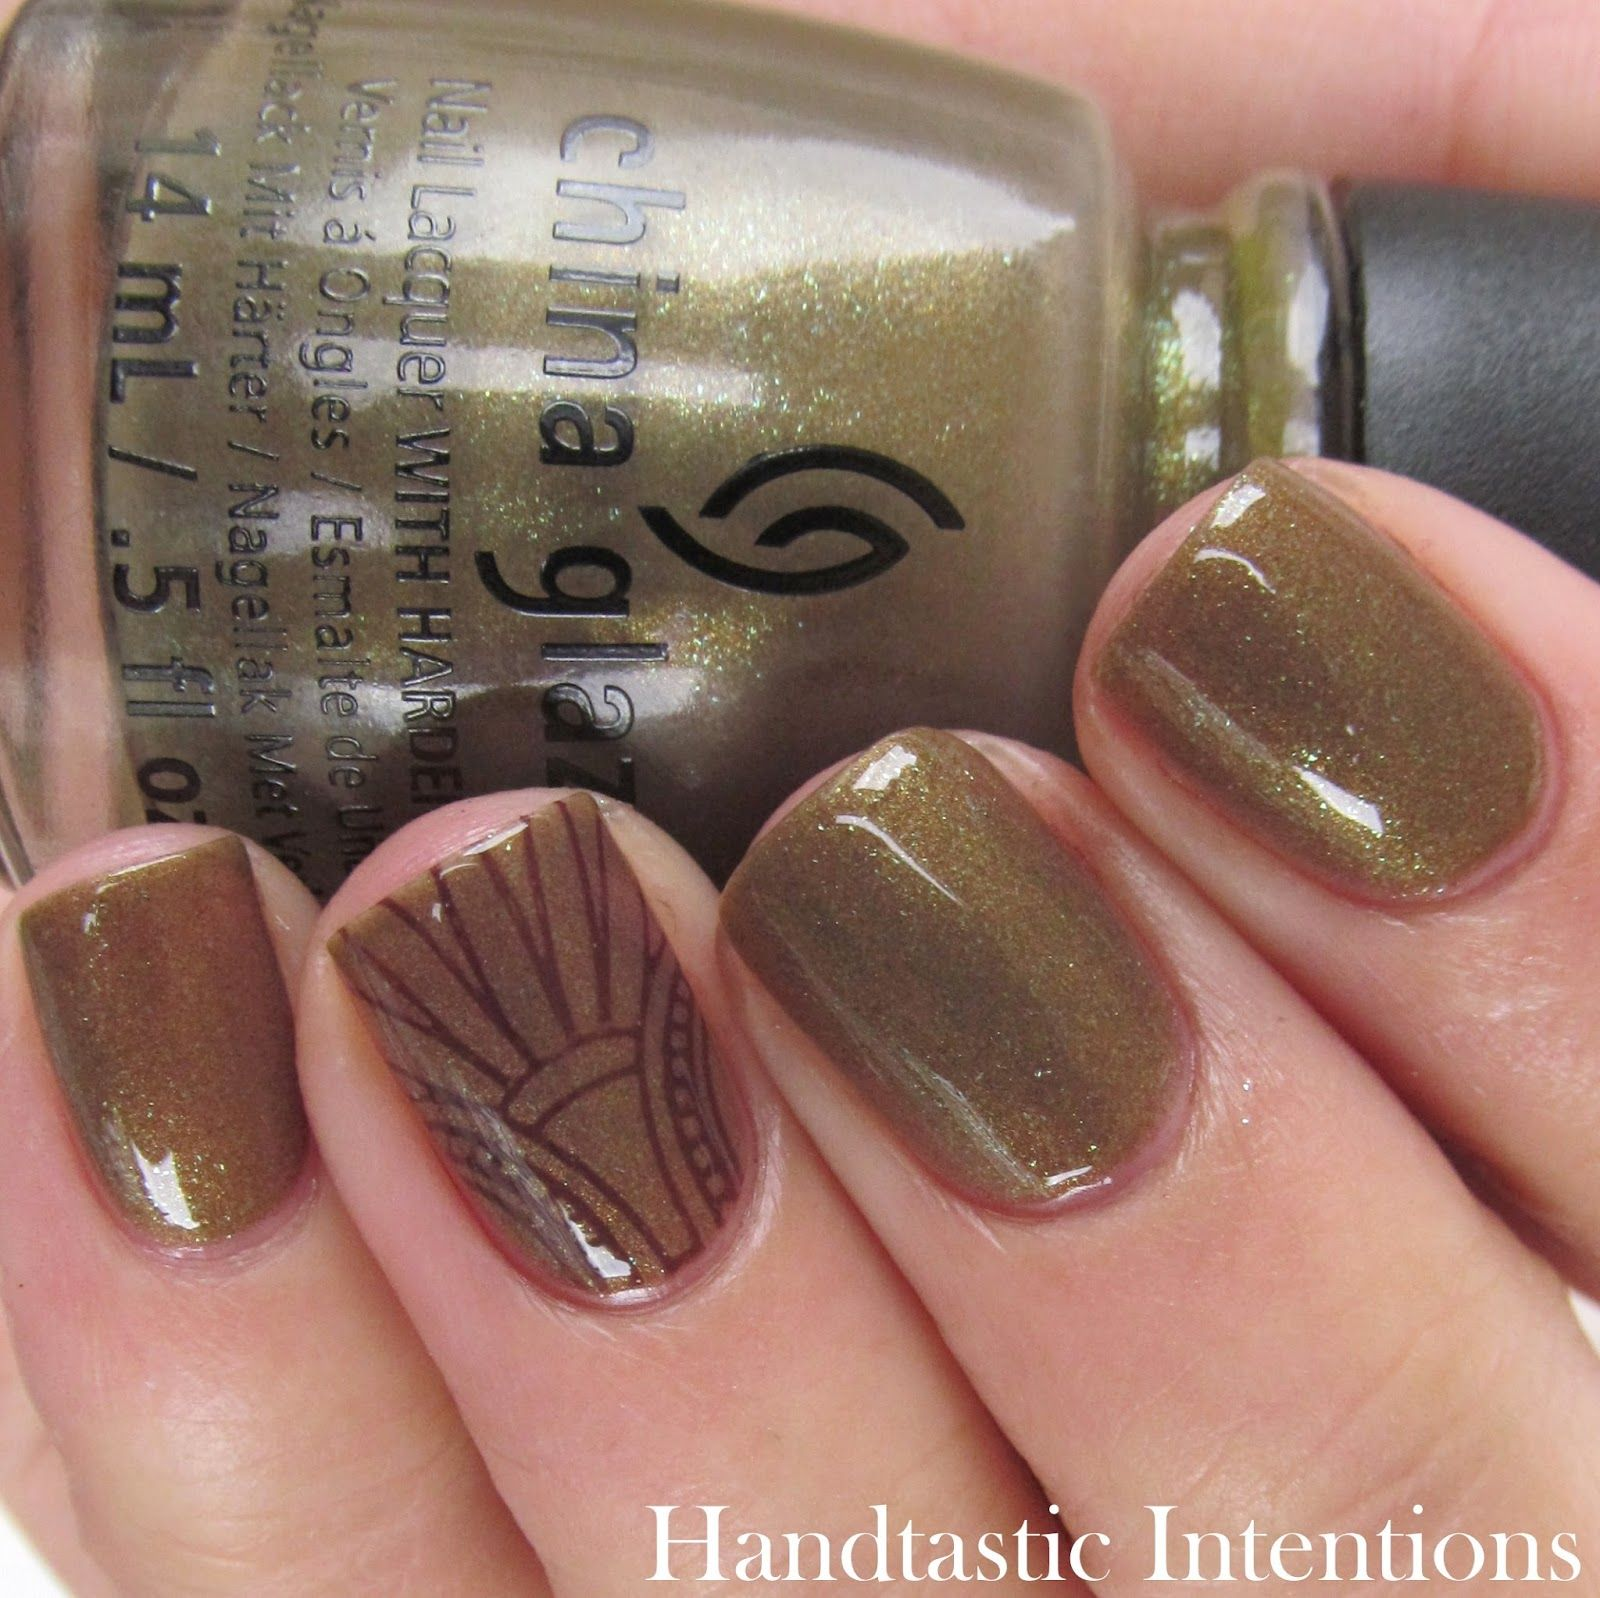 Handtastic Intentions: China Glaze Mind the Gap | Passion for nails ...